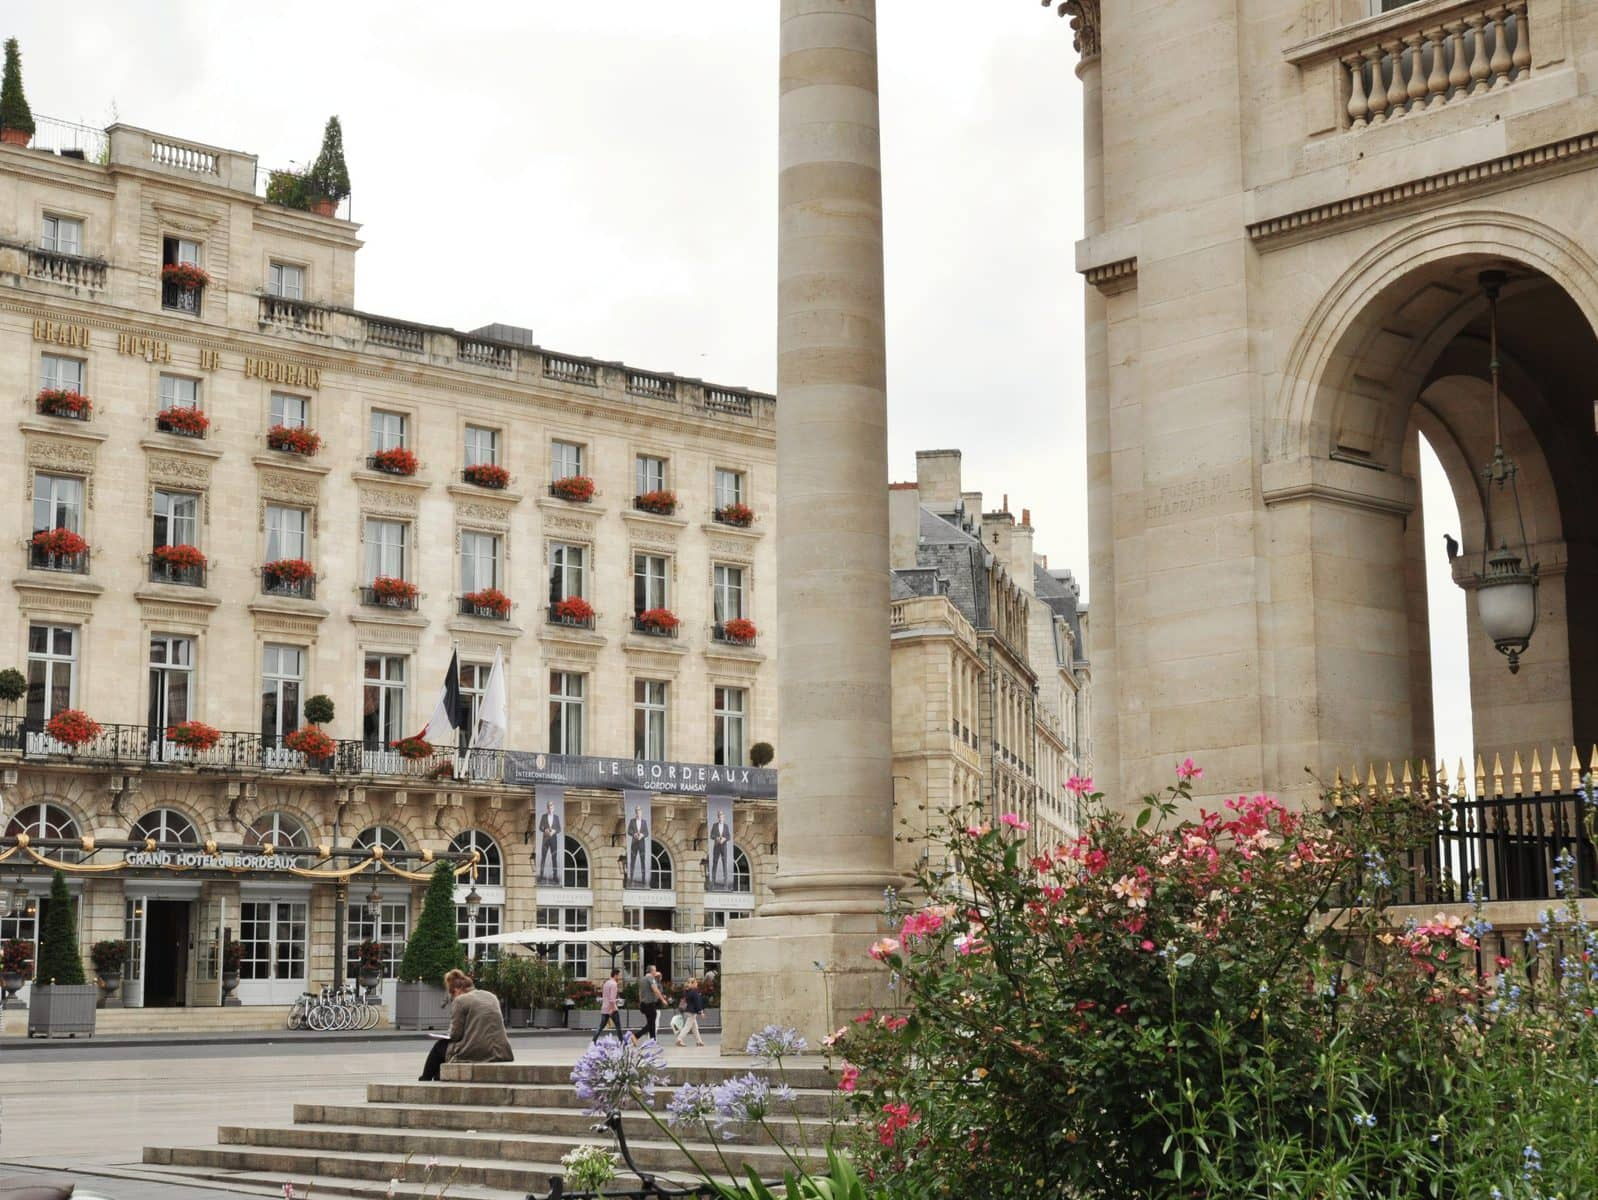 View of the Grand Hotel in Bordeaux, France from the Grand Theatre